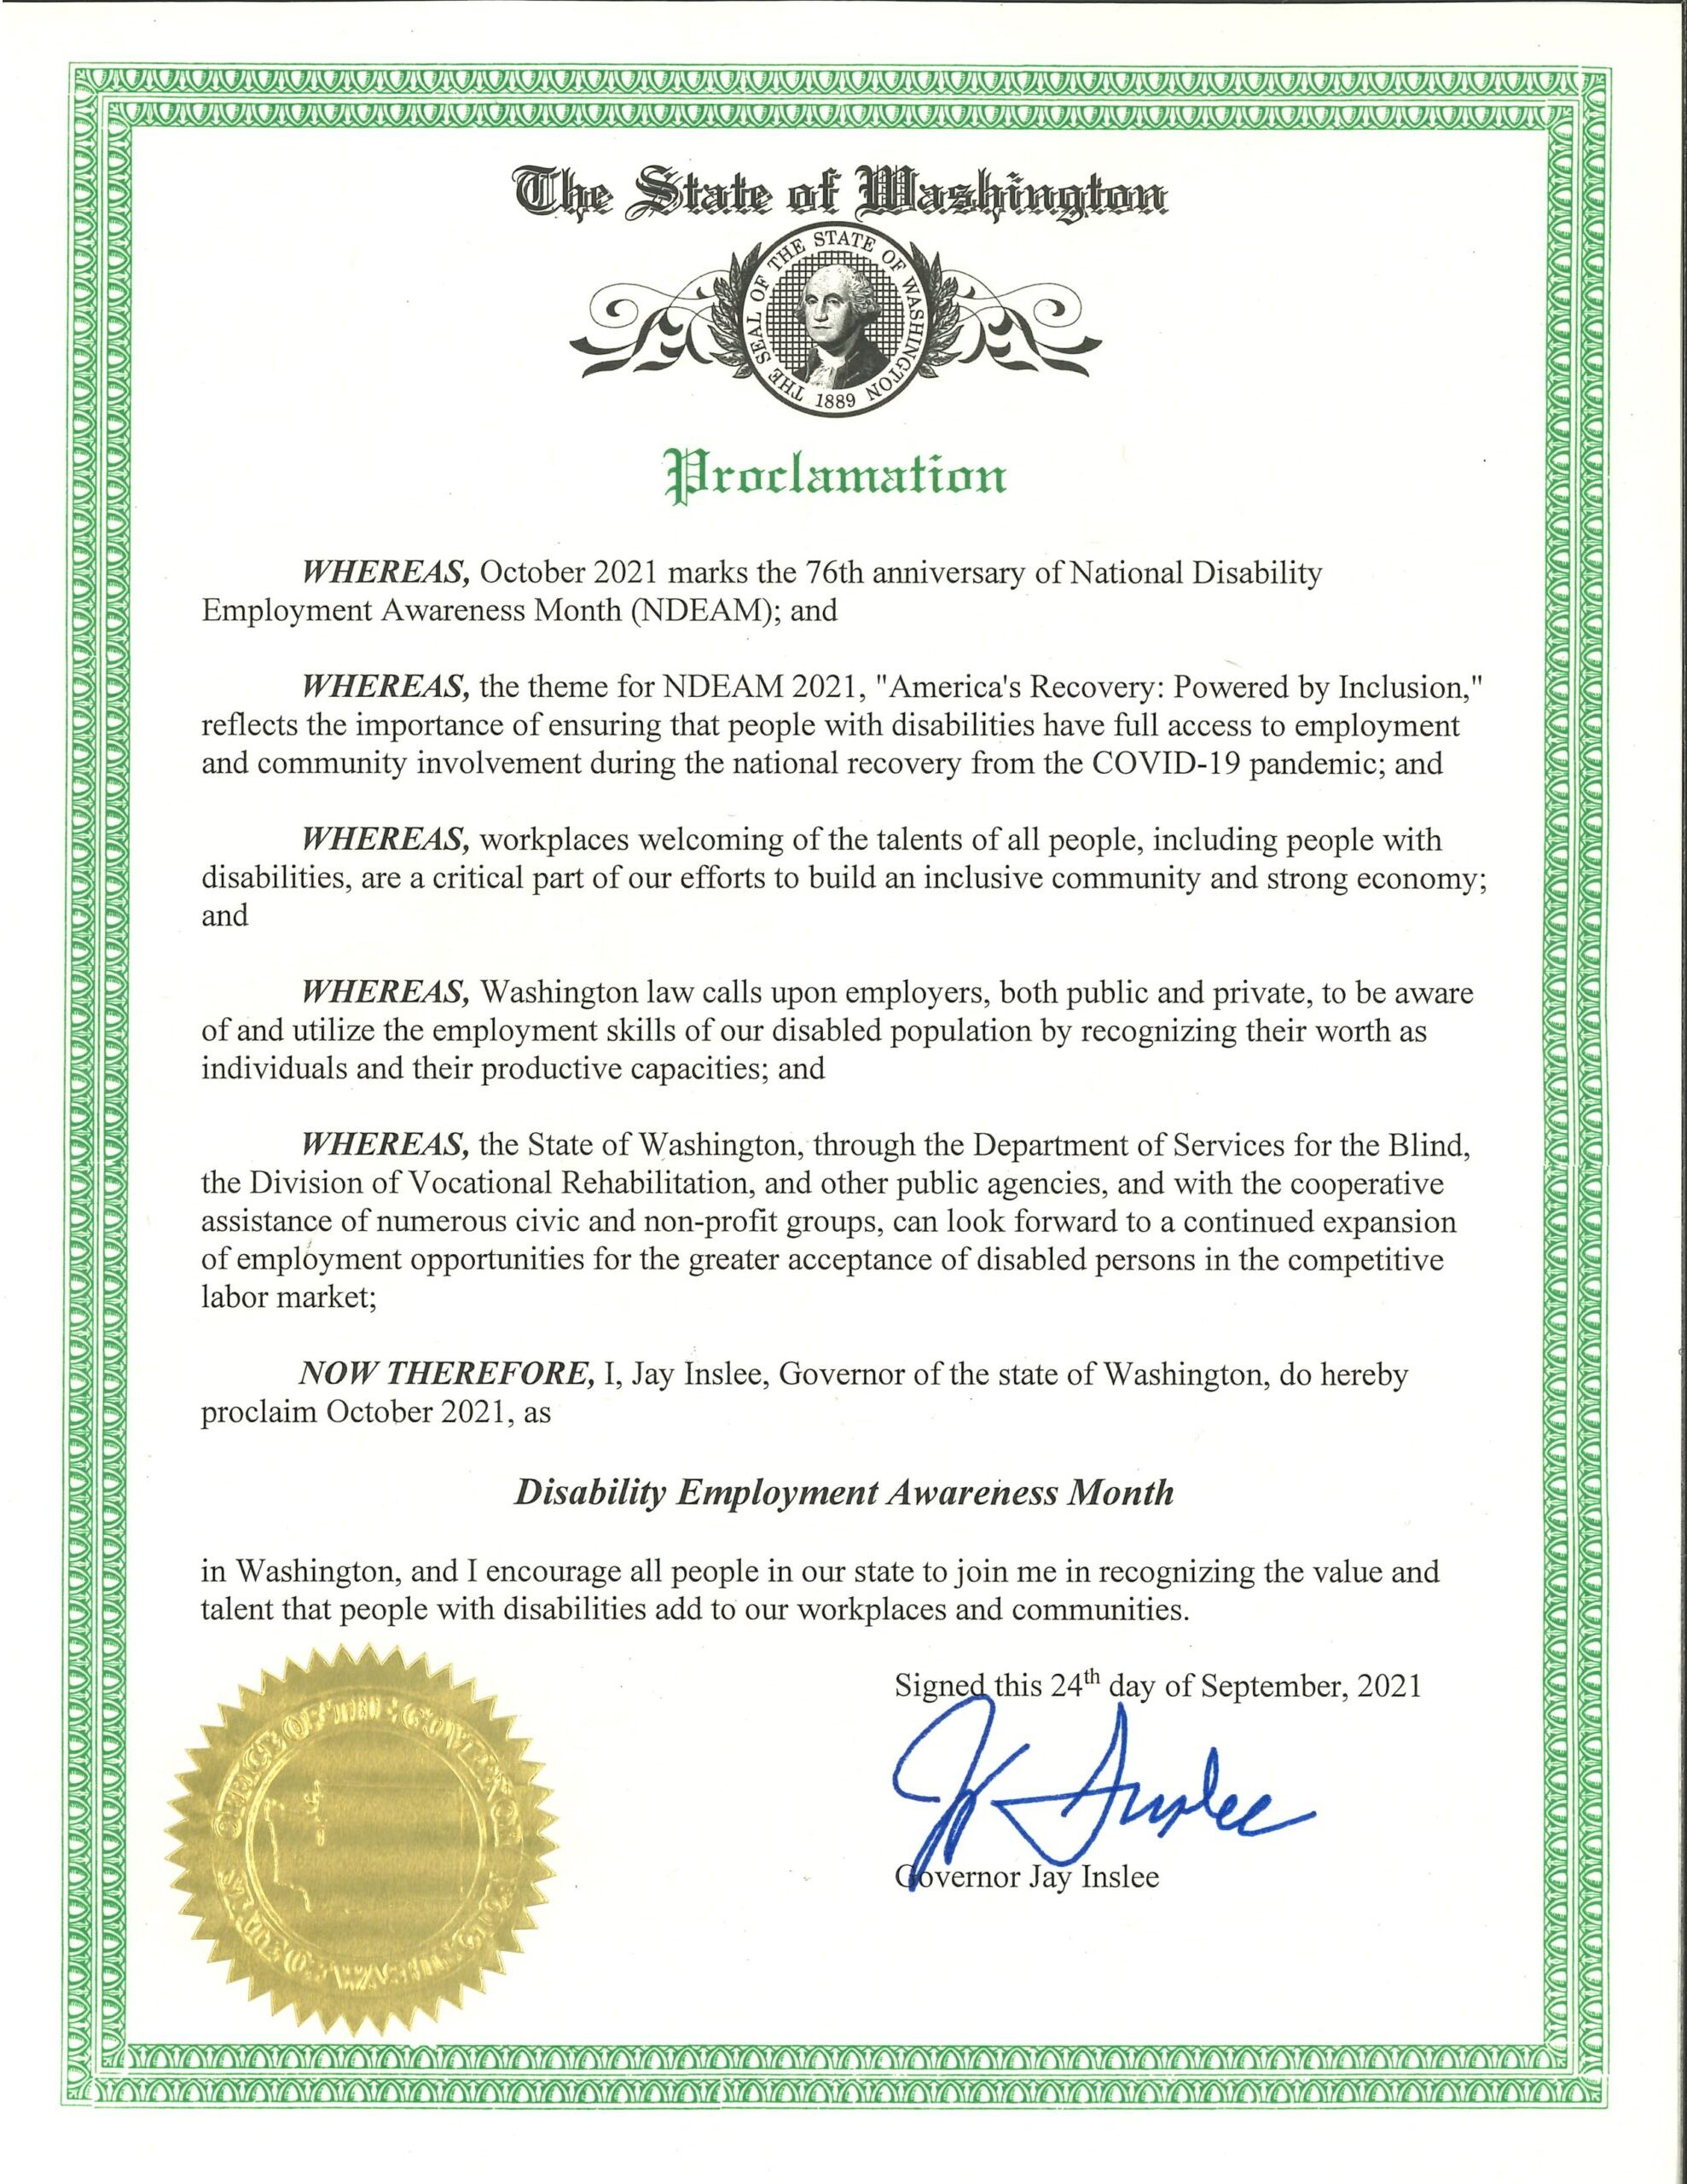 State of Washington Proclamation - Disability Employment Awareness Month, October